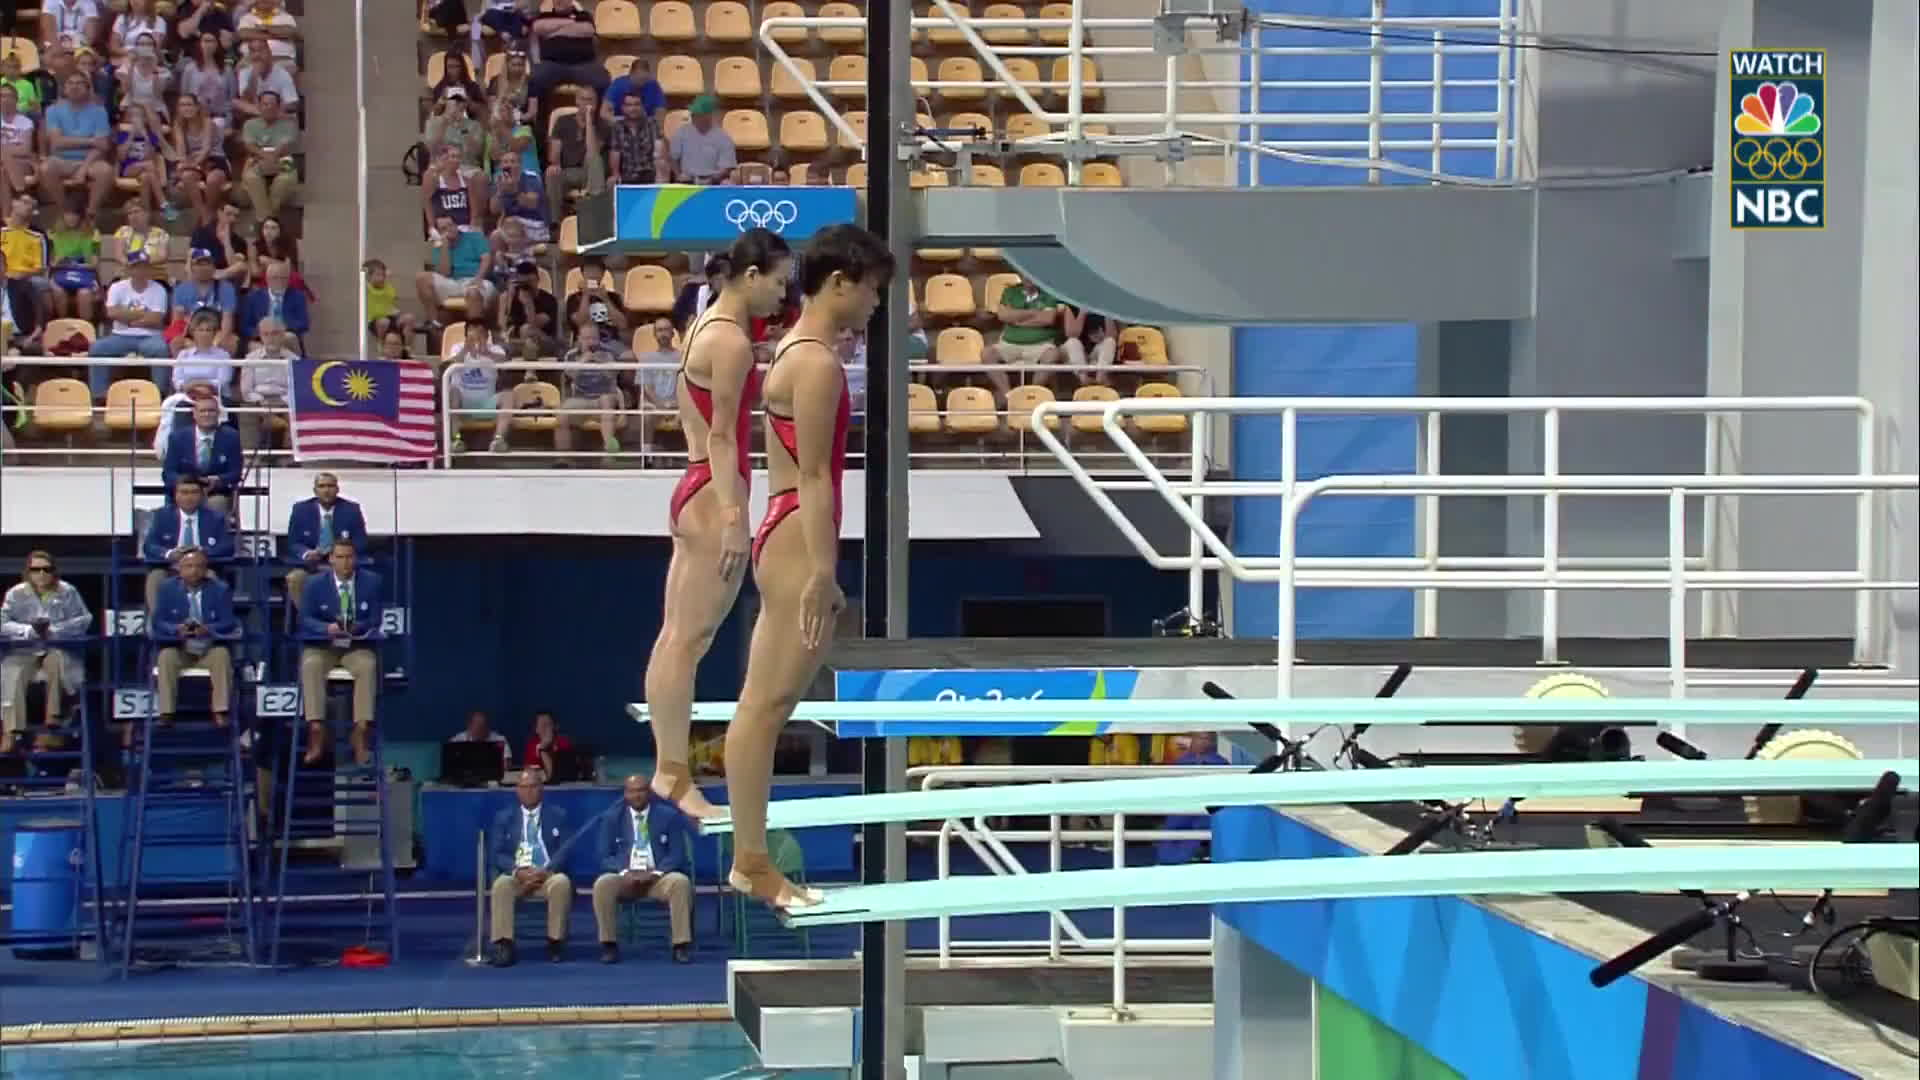 nbc sports, olymgifs, olympics, Duo from China takes gold with perfectly synchronized dives GIFs